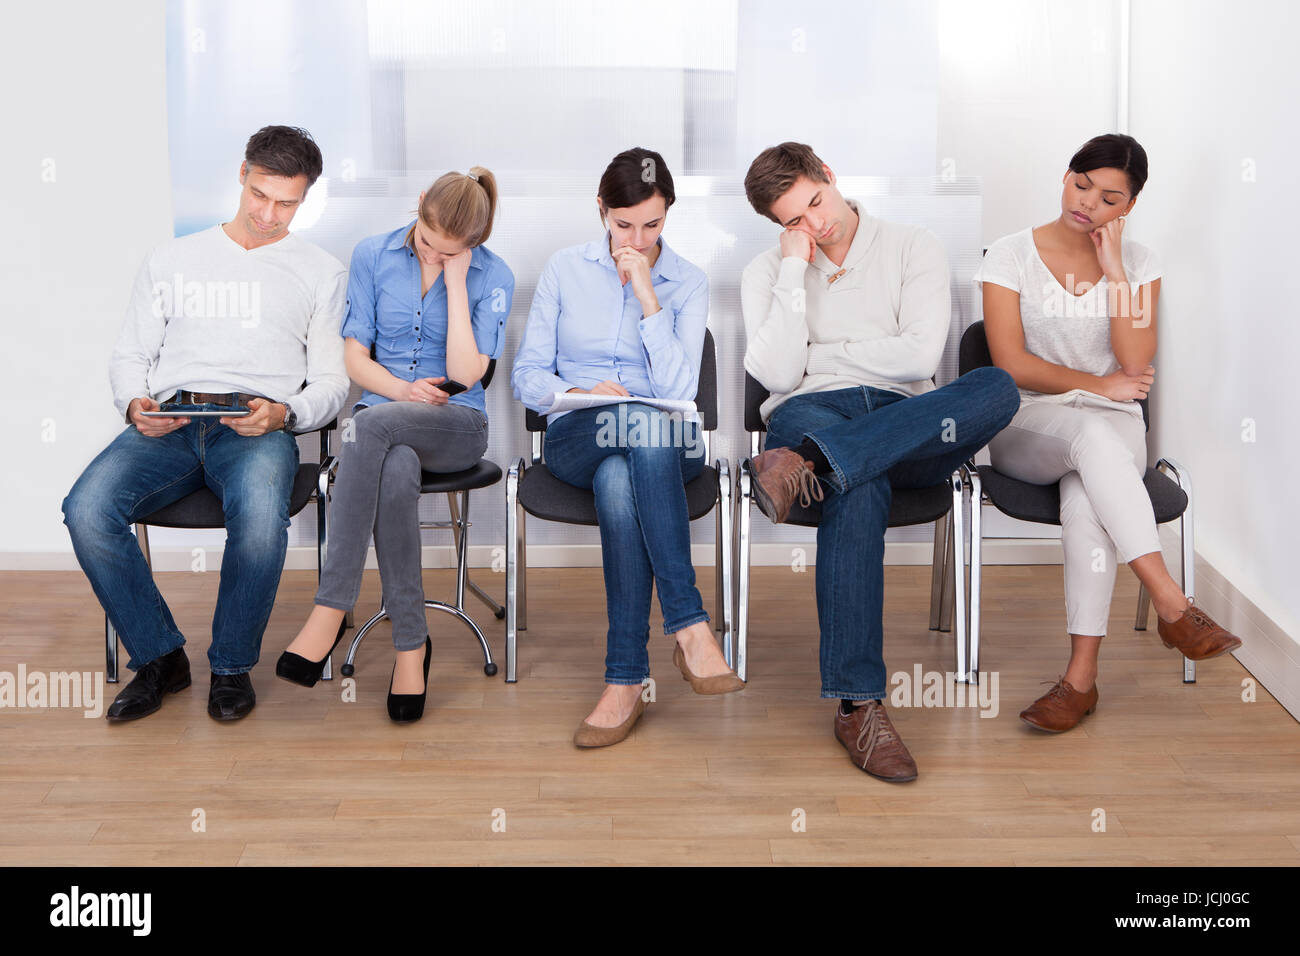 young group of people sleeping on chair in a waiting room stock